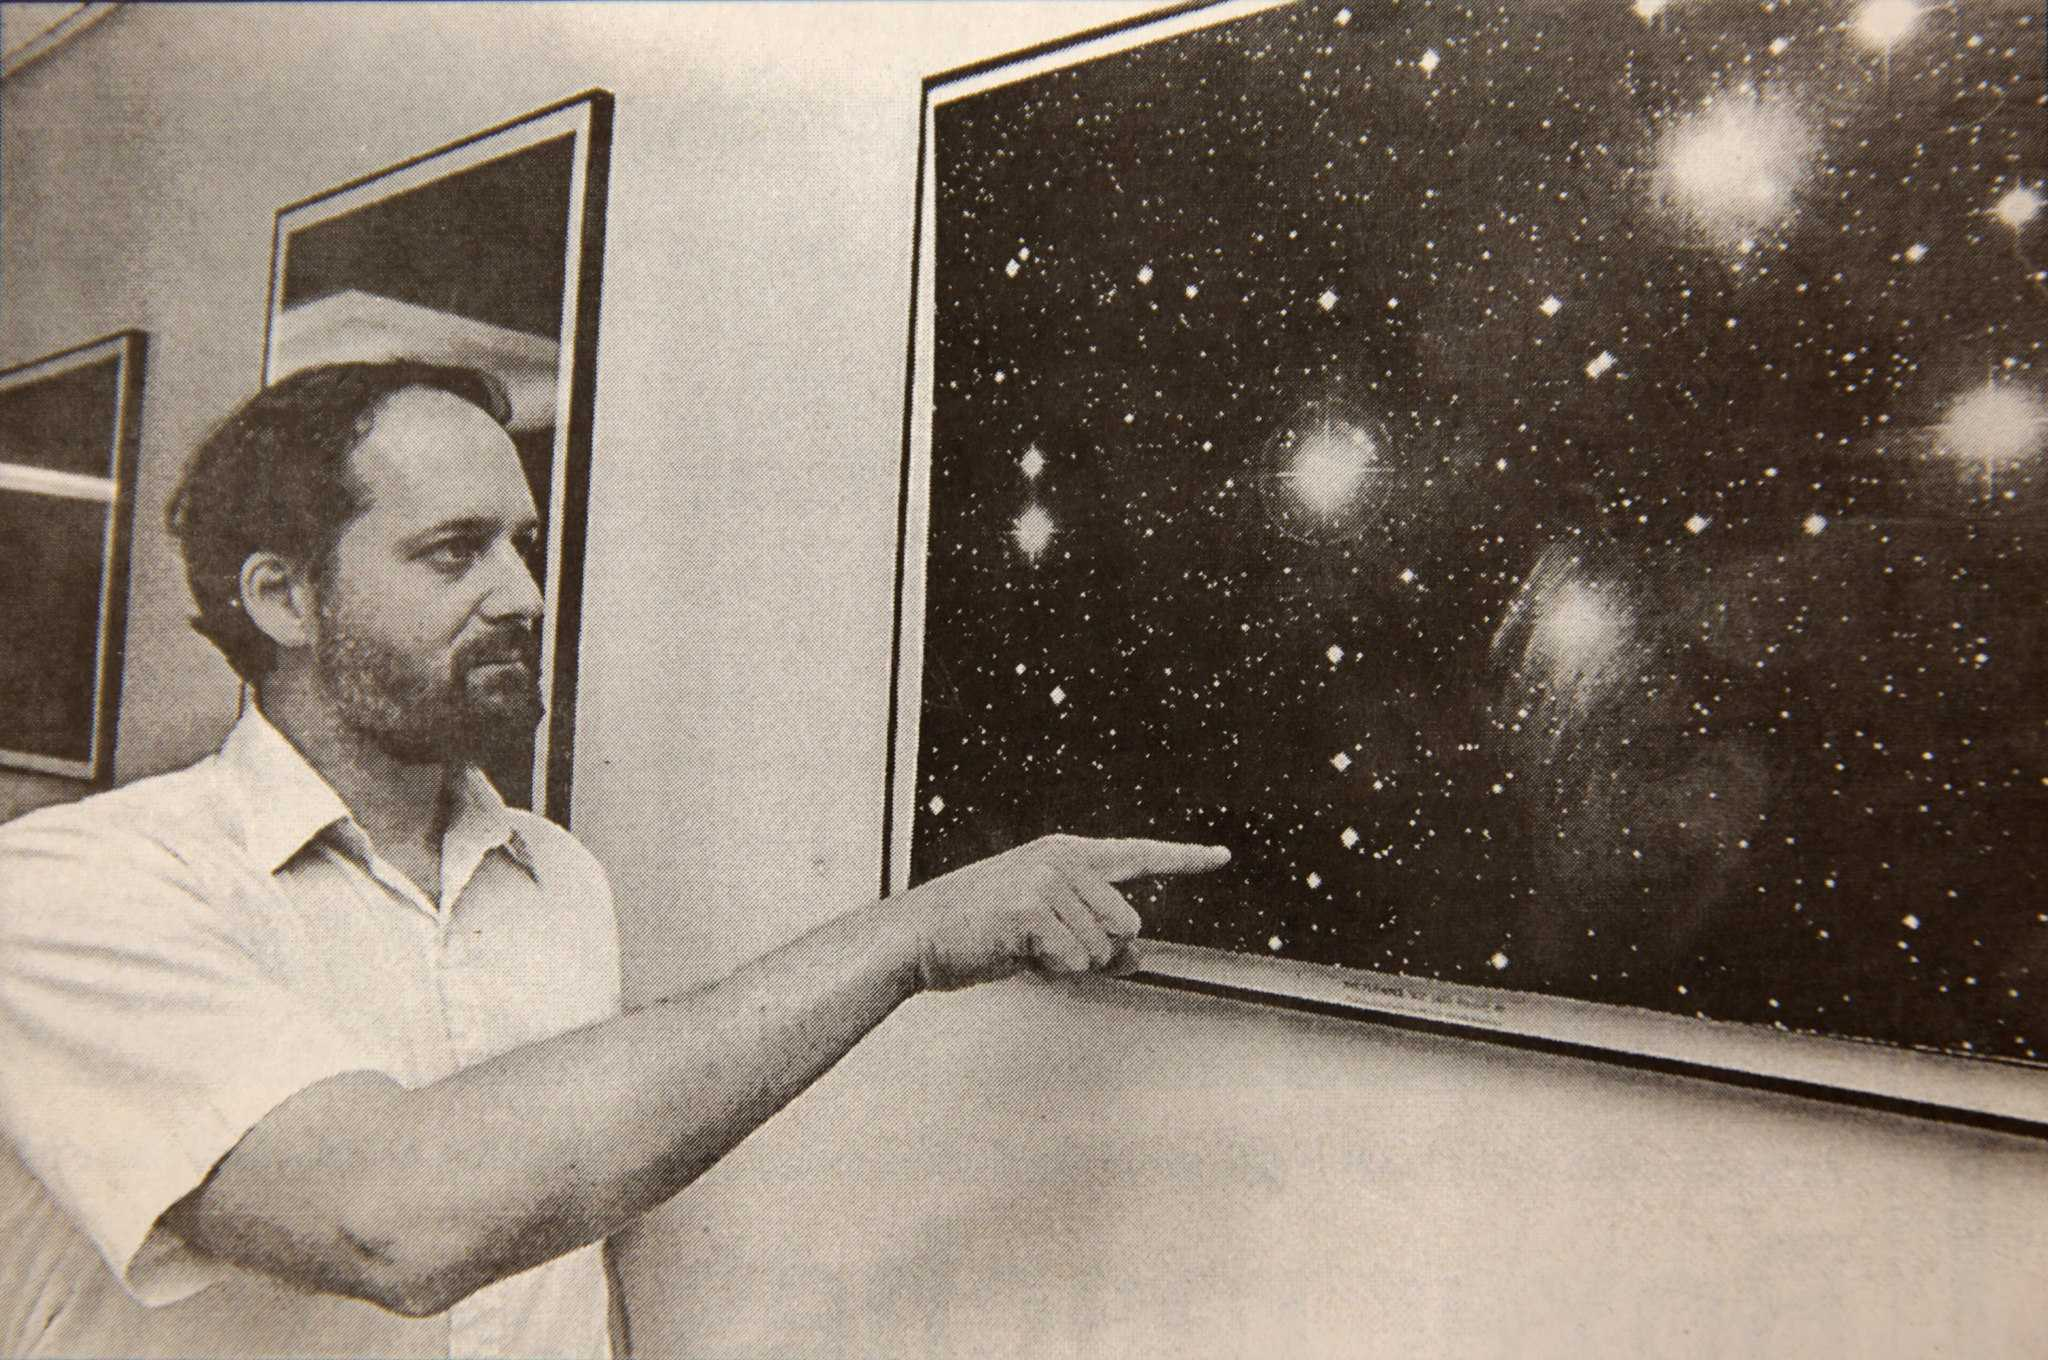 Geoff Marcy, professor of physics and astronomy, is part of a team which discovered a brown dwarf star near Pleides Cluster. Marcy is pointing to the area of detail where the dwarf is located. Photo by Edmund Lee for the Golden Gator published on August 31, 1995.